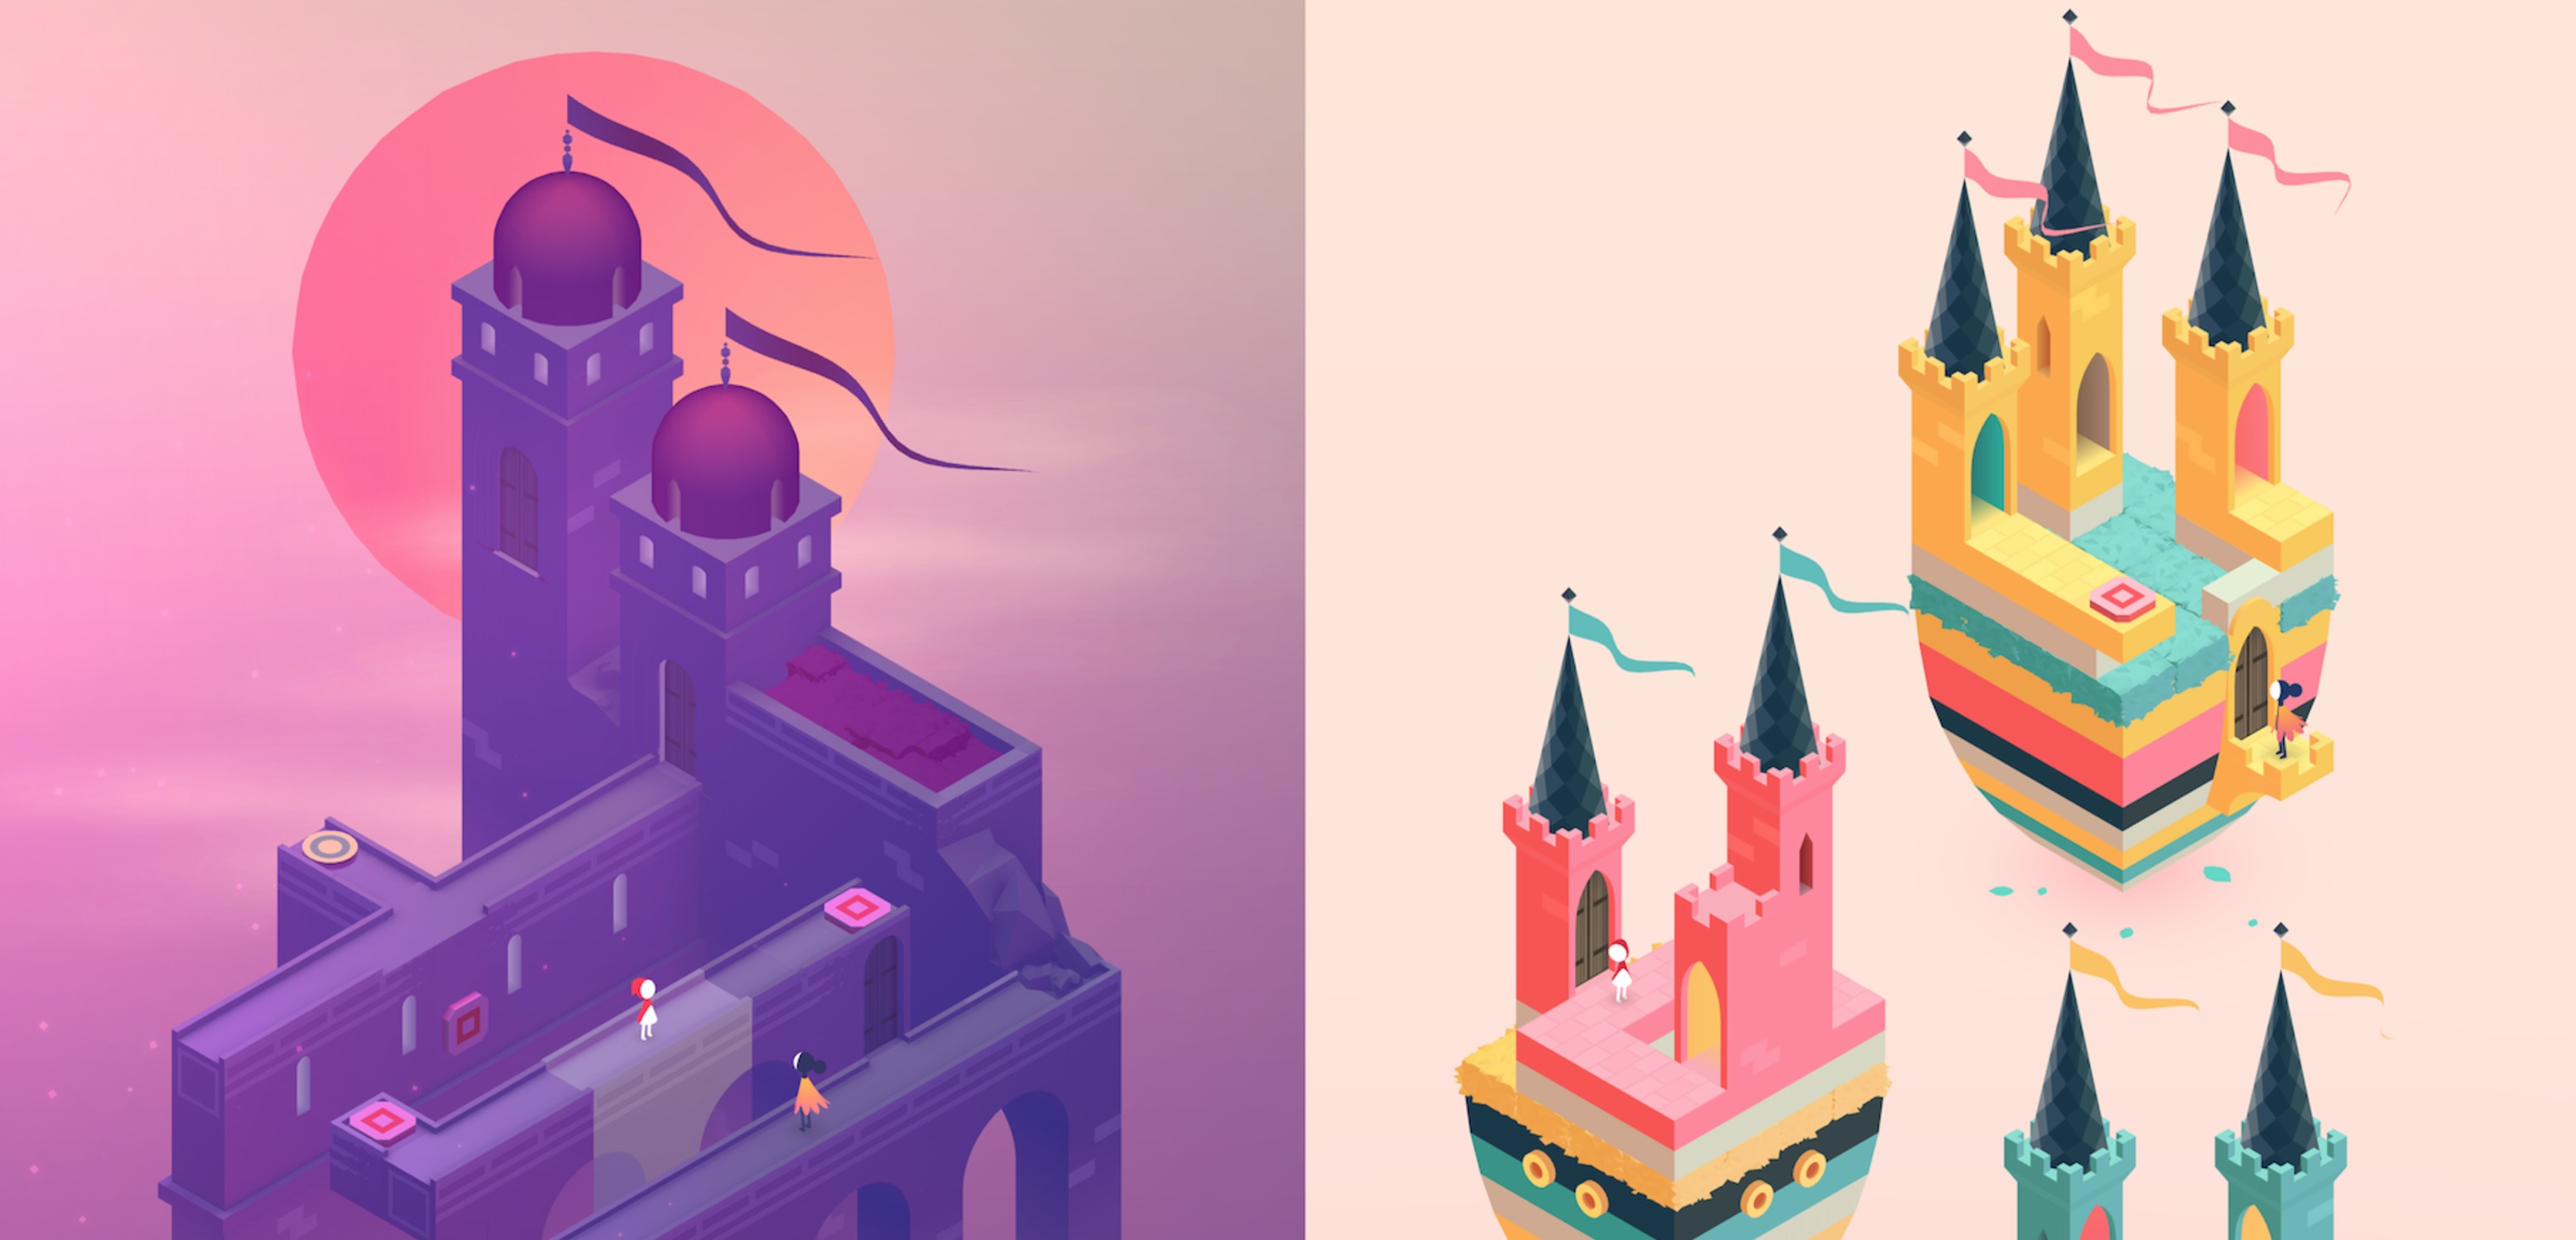 Monument Valley 2 sigue siendo tan bonito y mágico como su antecesor